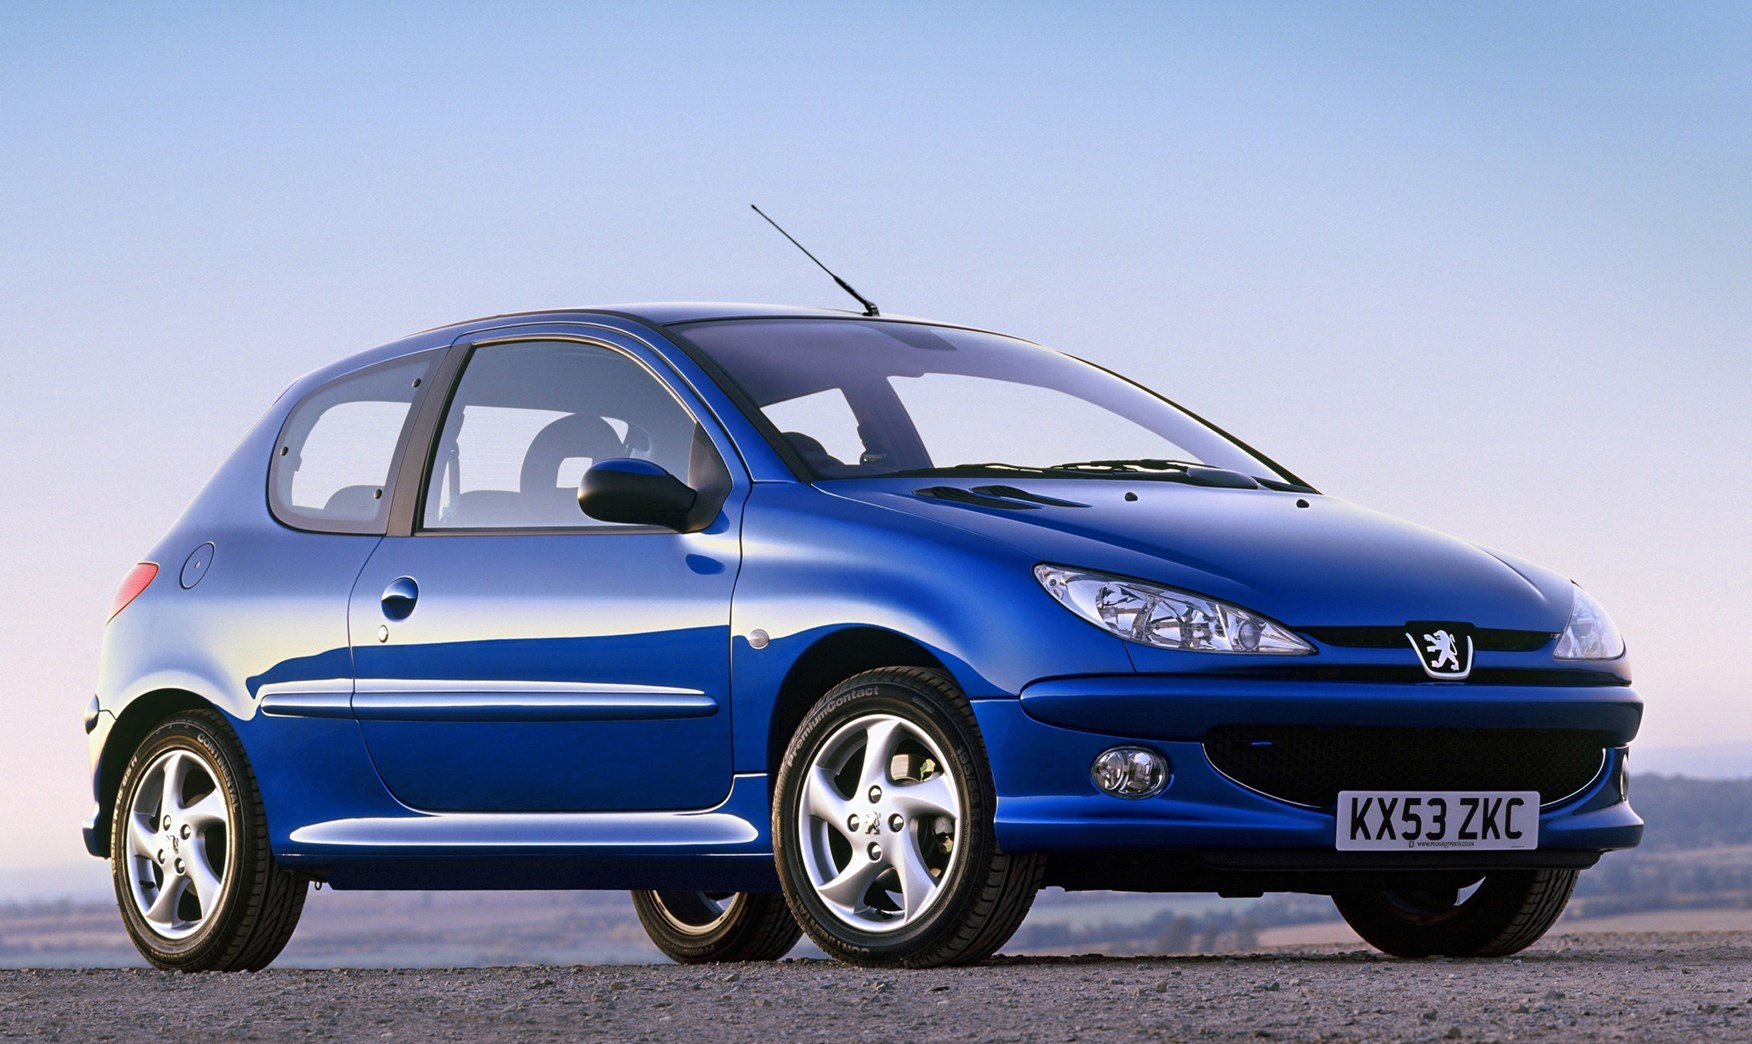 peugeot 206 hatchback review 1998 2009 parkers. Black Bedroom Furniture Sets. Home Design Ideas